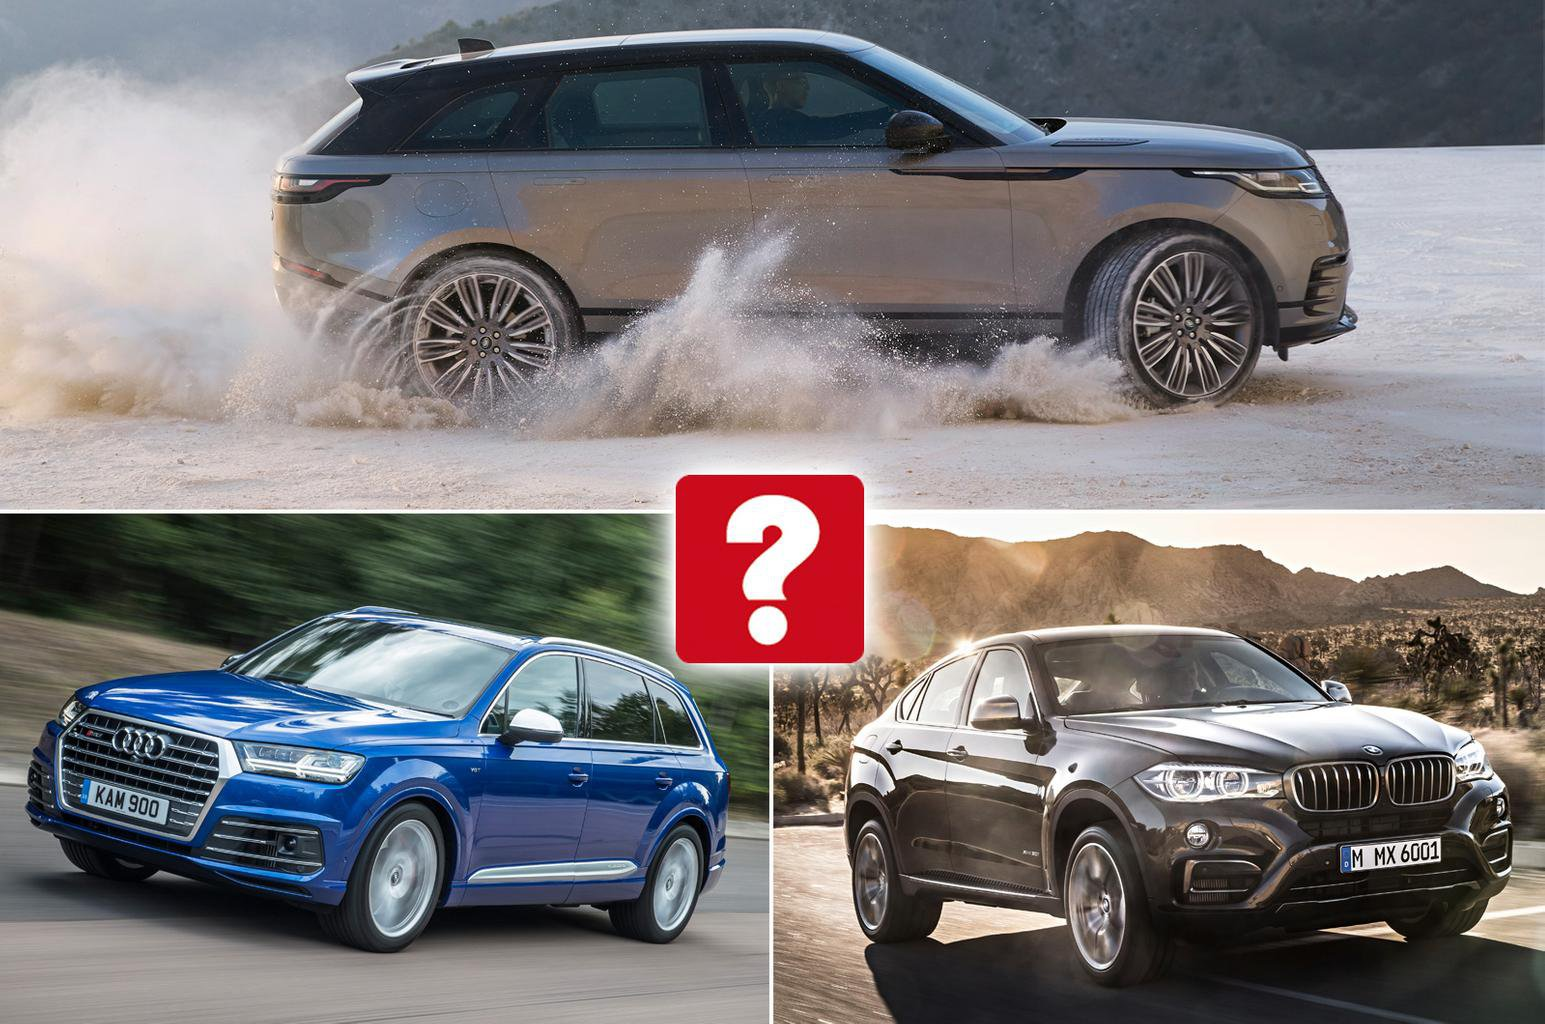 Which of these luxury SUVs do you find most desirable?